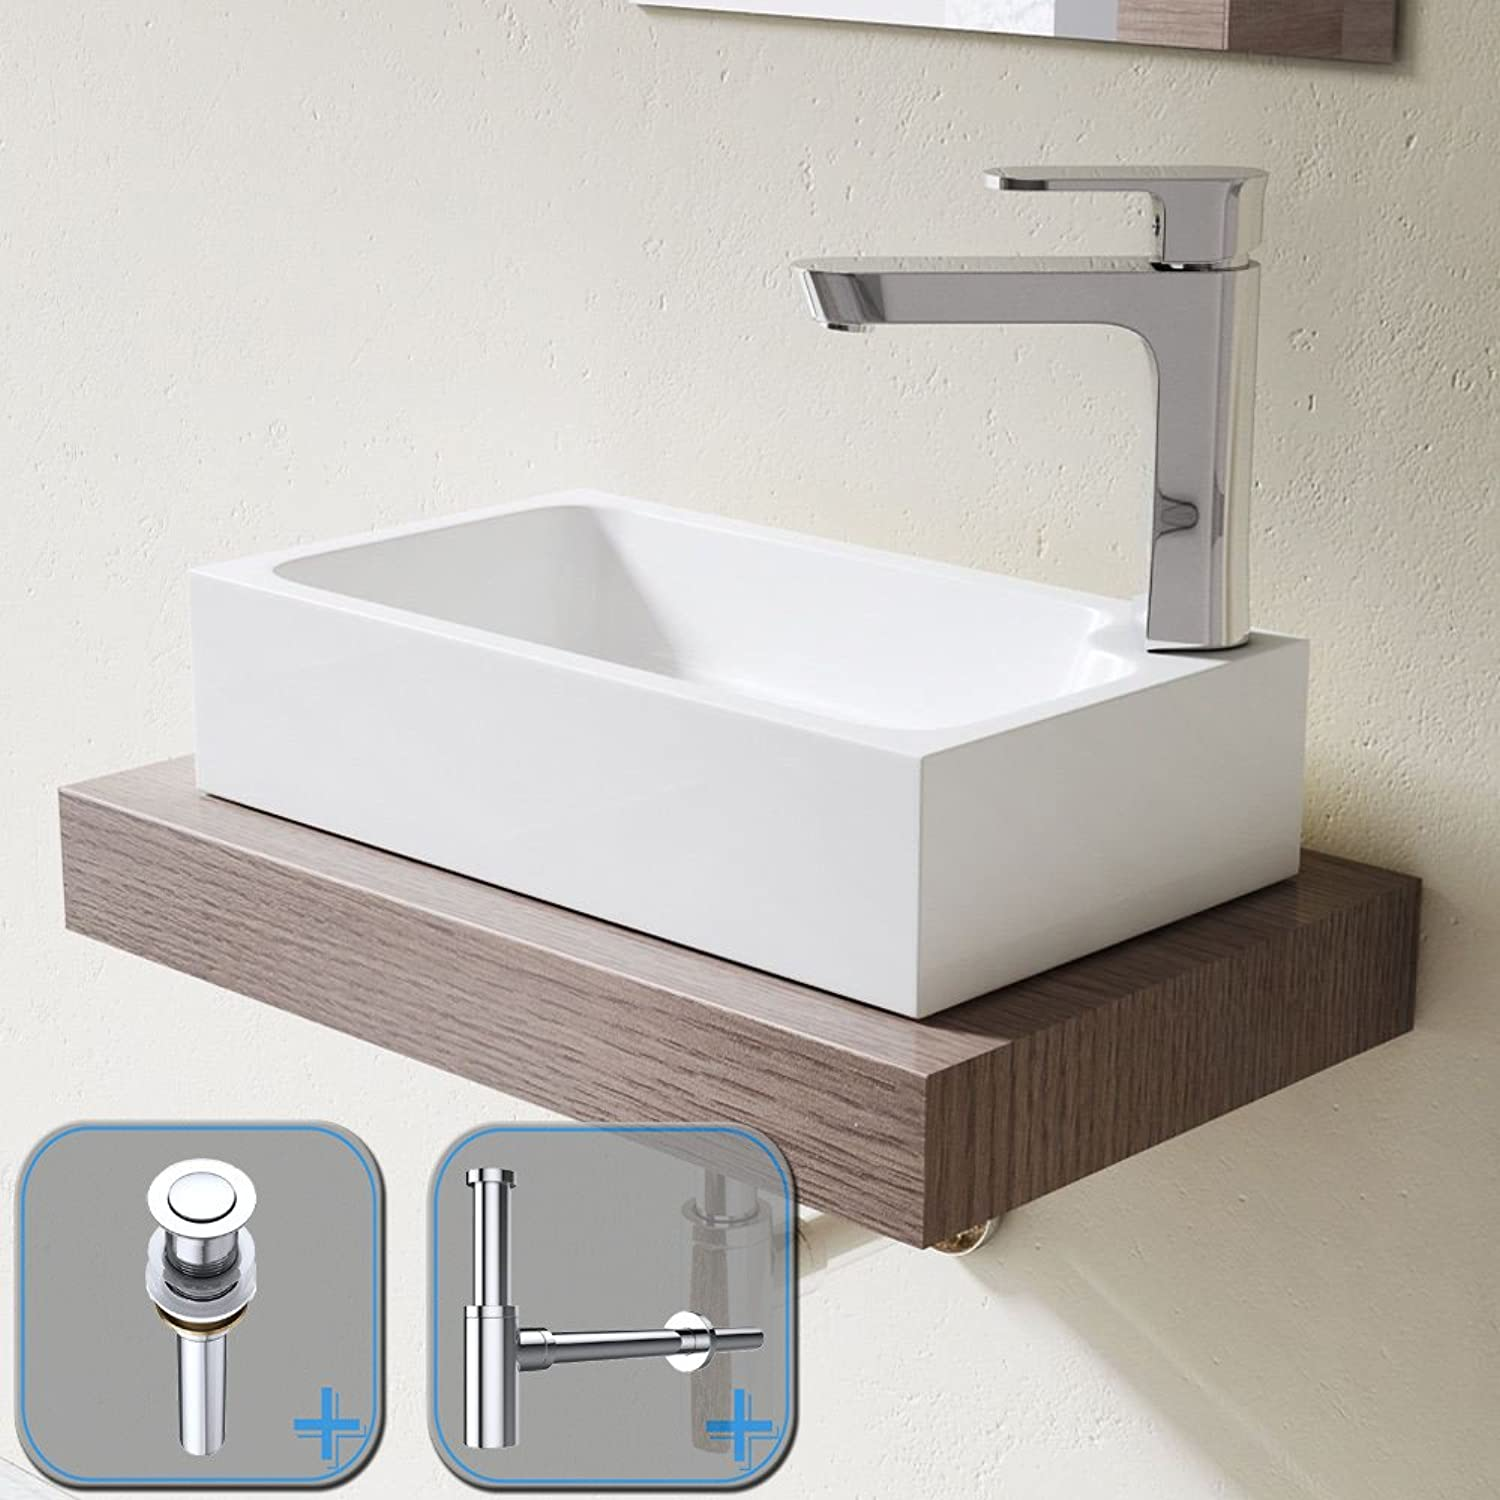 Durovin Bathrooms Compact Stone Resin Wash Basin   Counter Top Mount Vessel   Single Corner Tap Hole   Includes Push Pop Up Round Button Waste Plug PU05 and Round Bottle Trap S05